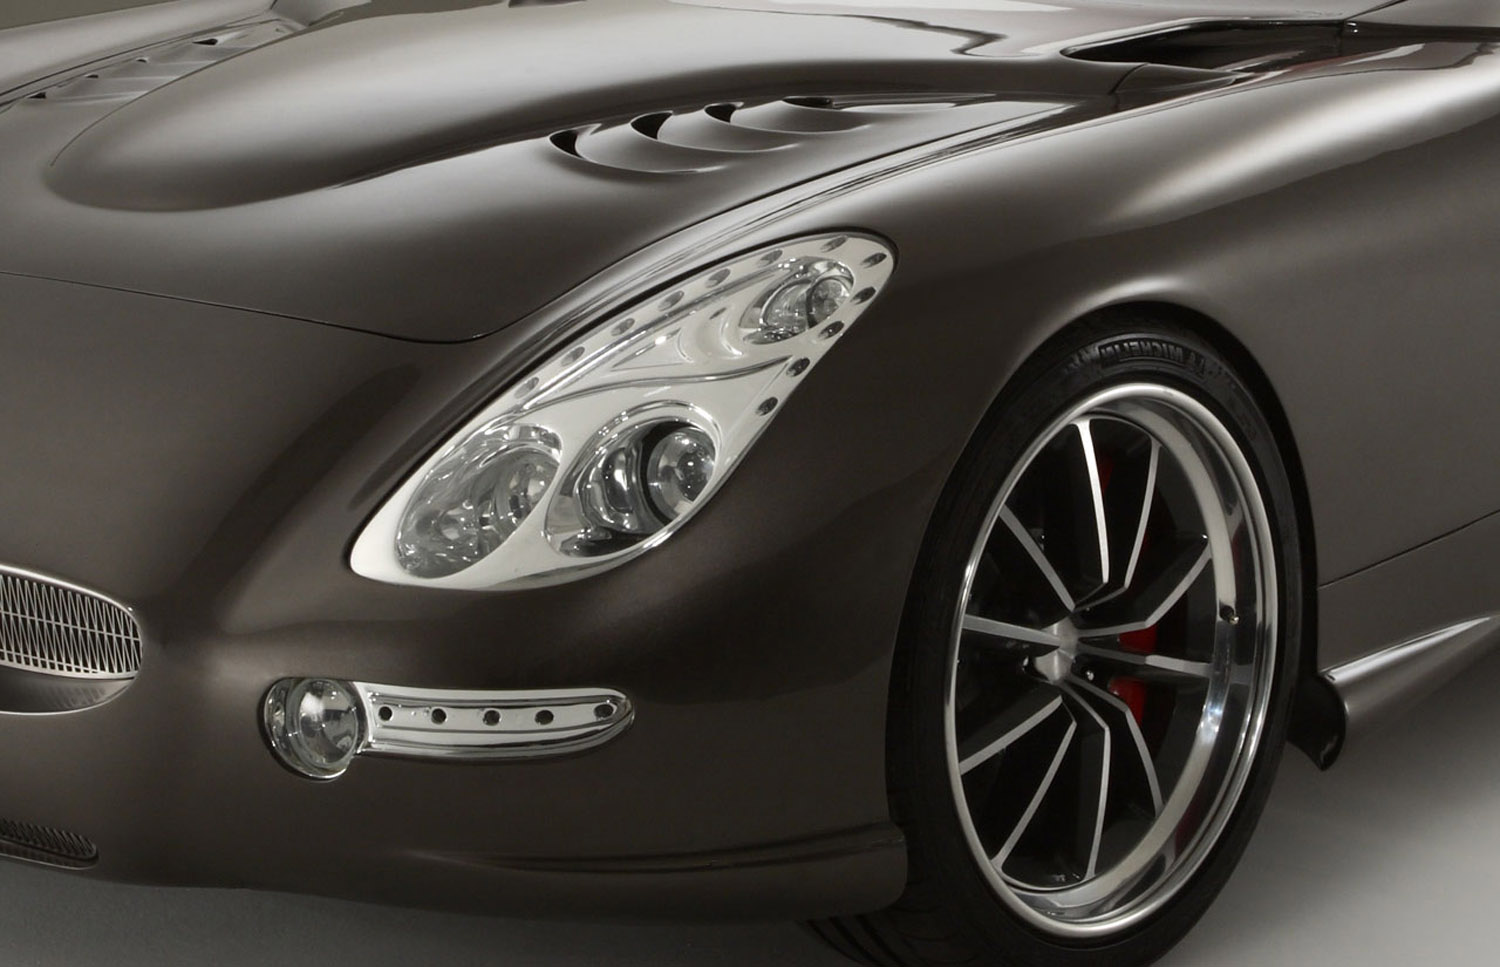 Trident Iceni Grand Tourer To Be Displayed At Salon Prive